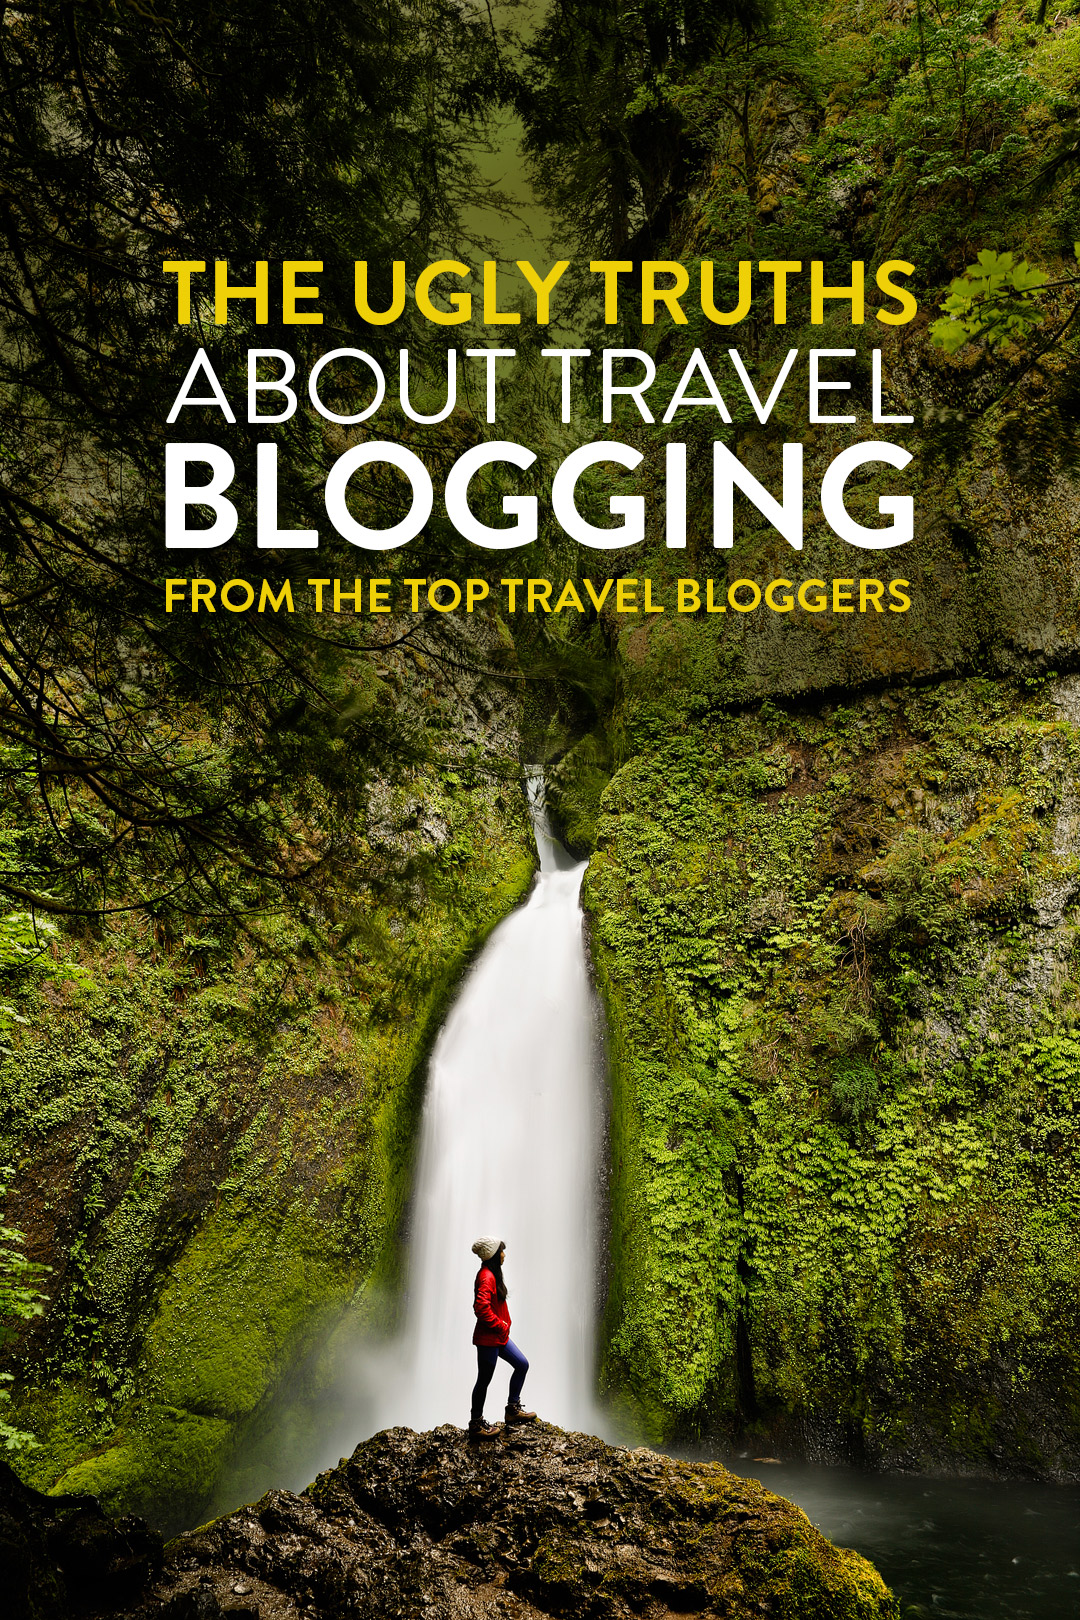 The Ugly Truths of Being a Professional Travel Blogger // Local Adventurer #blogging #travelblogger #ontheblog